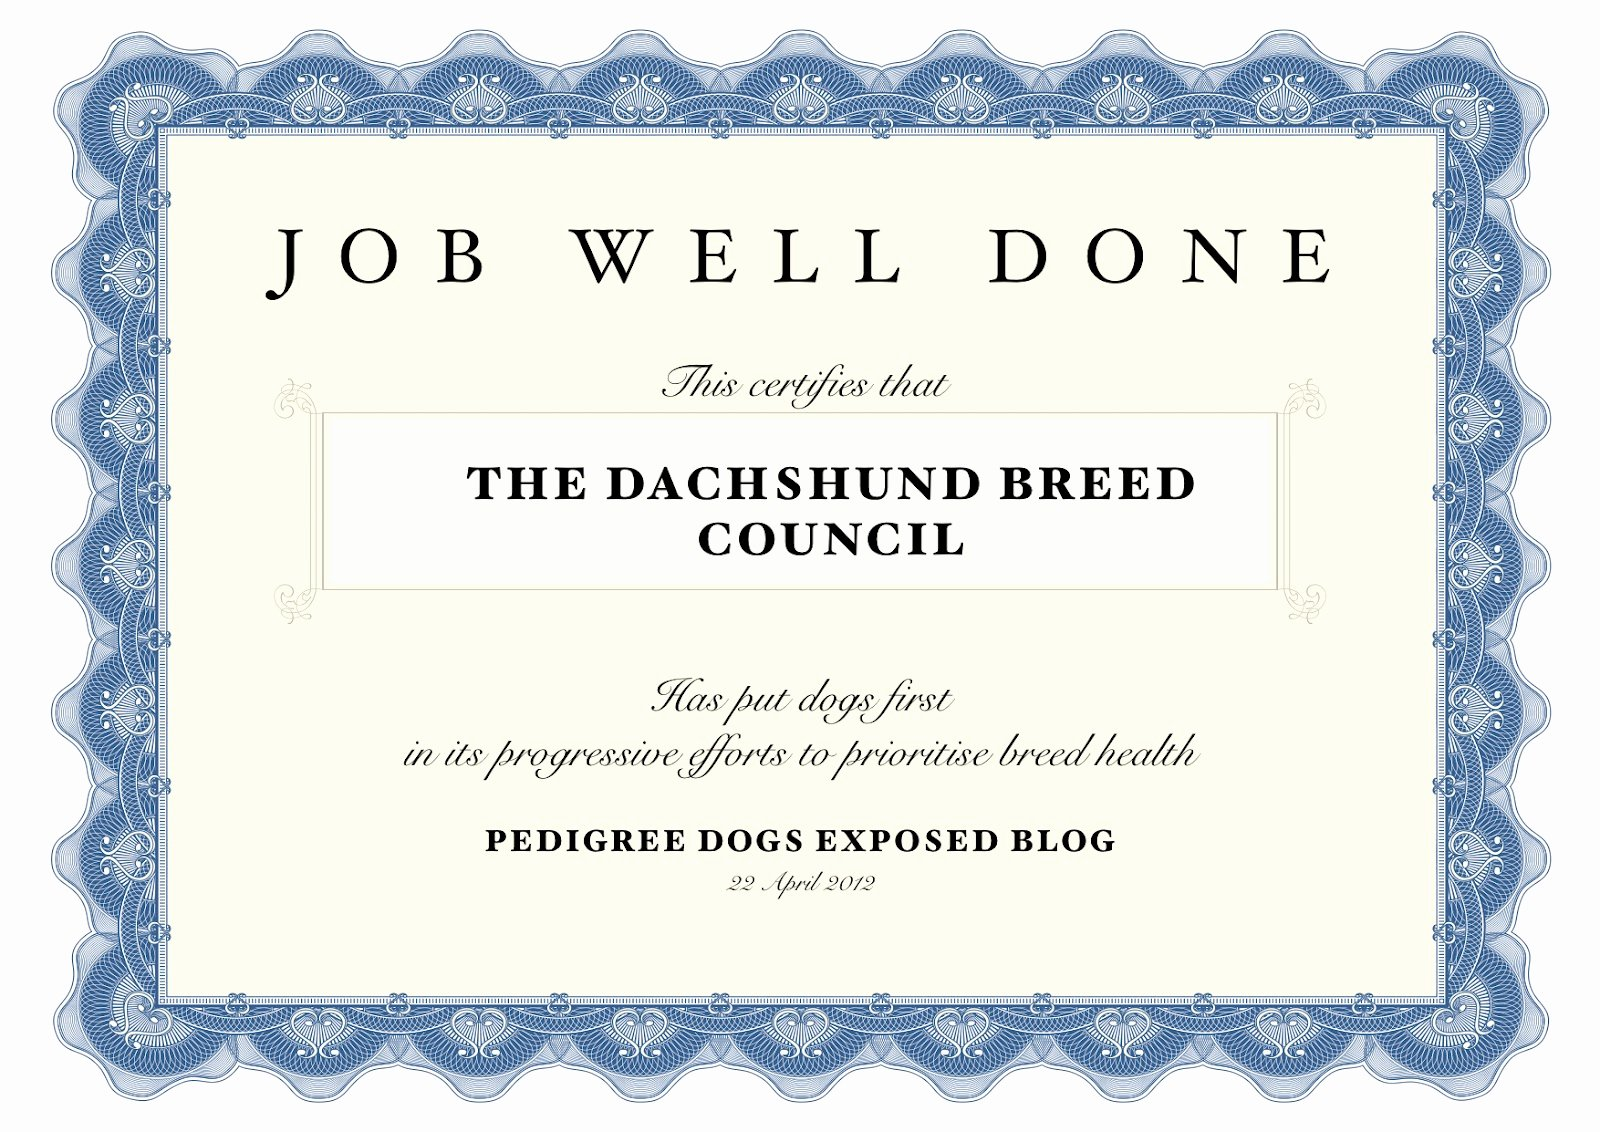 Job Well Done Certificate Awesome Pedigree Dogs Exposed the Blog Dachshund Breed Council